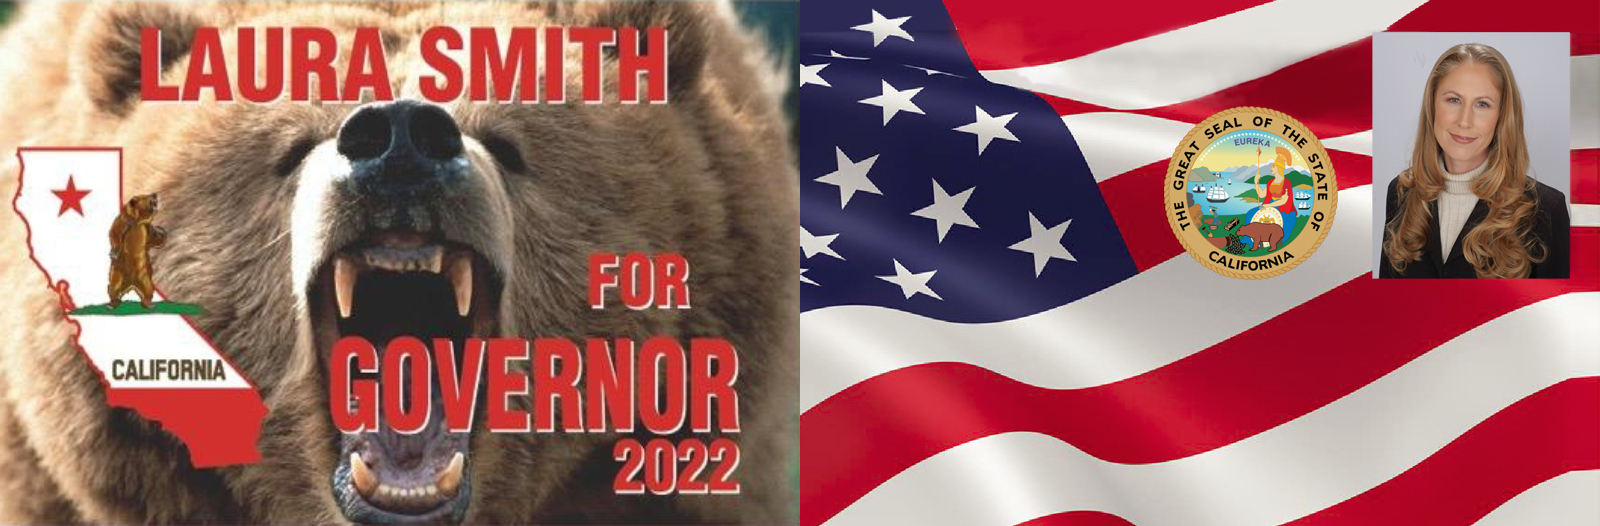 Laura Smith for Governor 2022